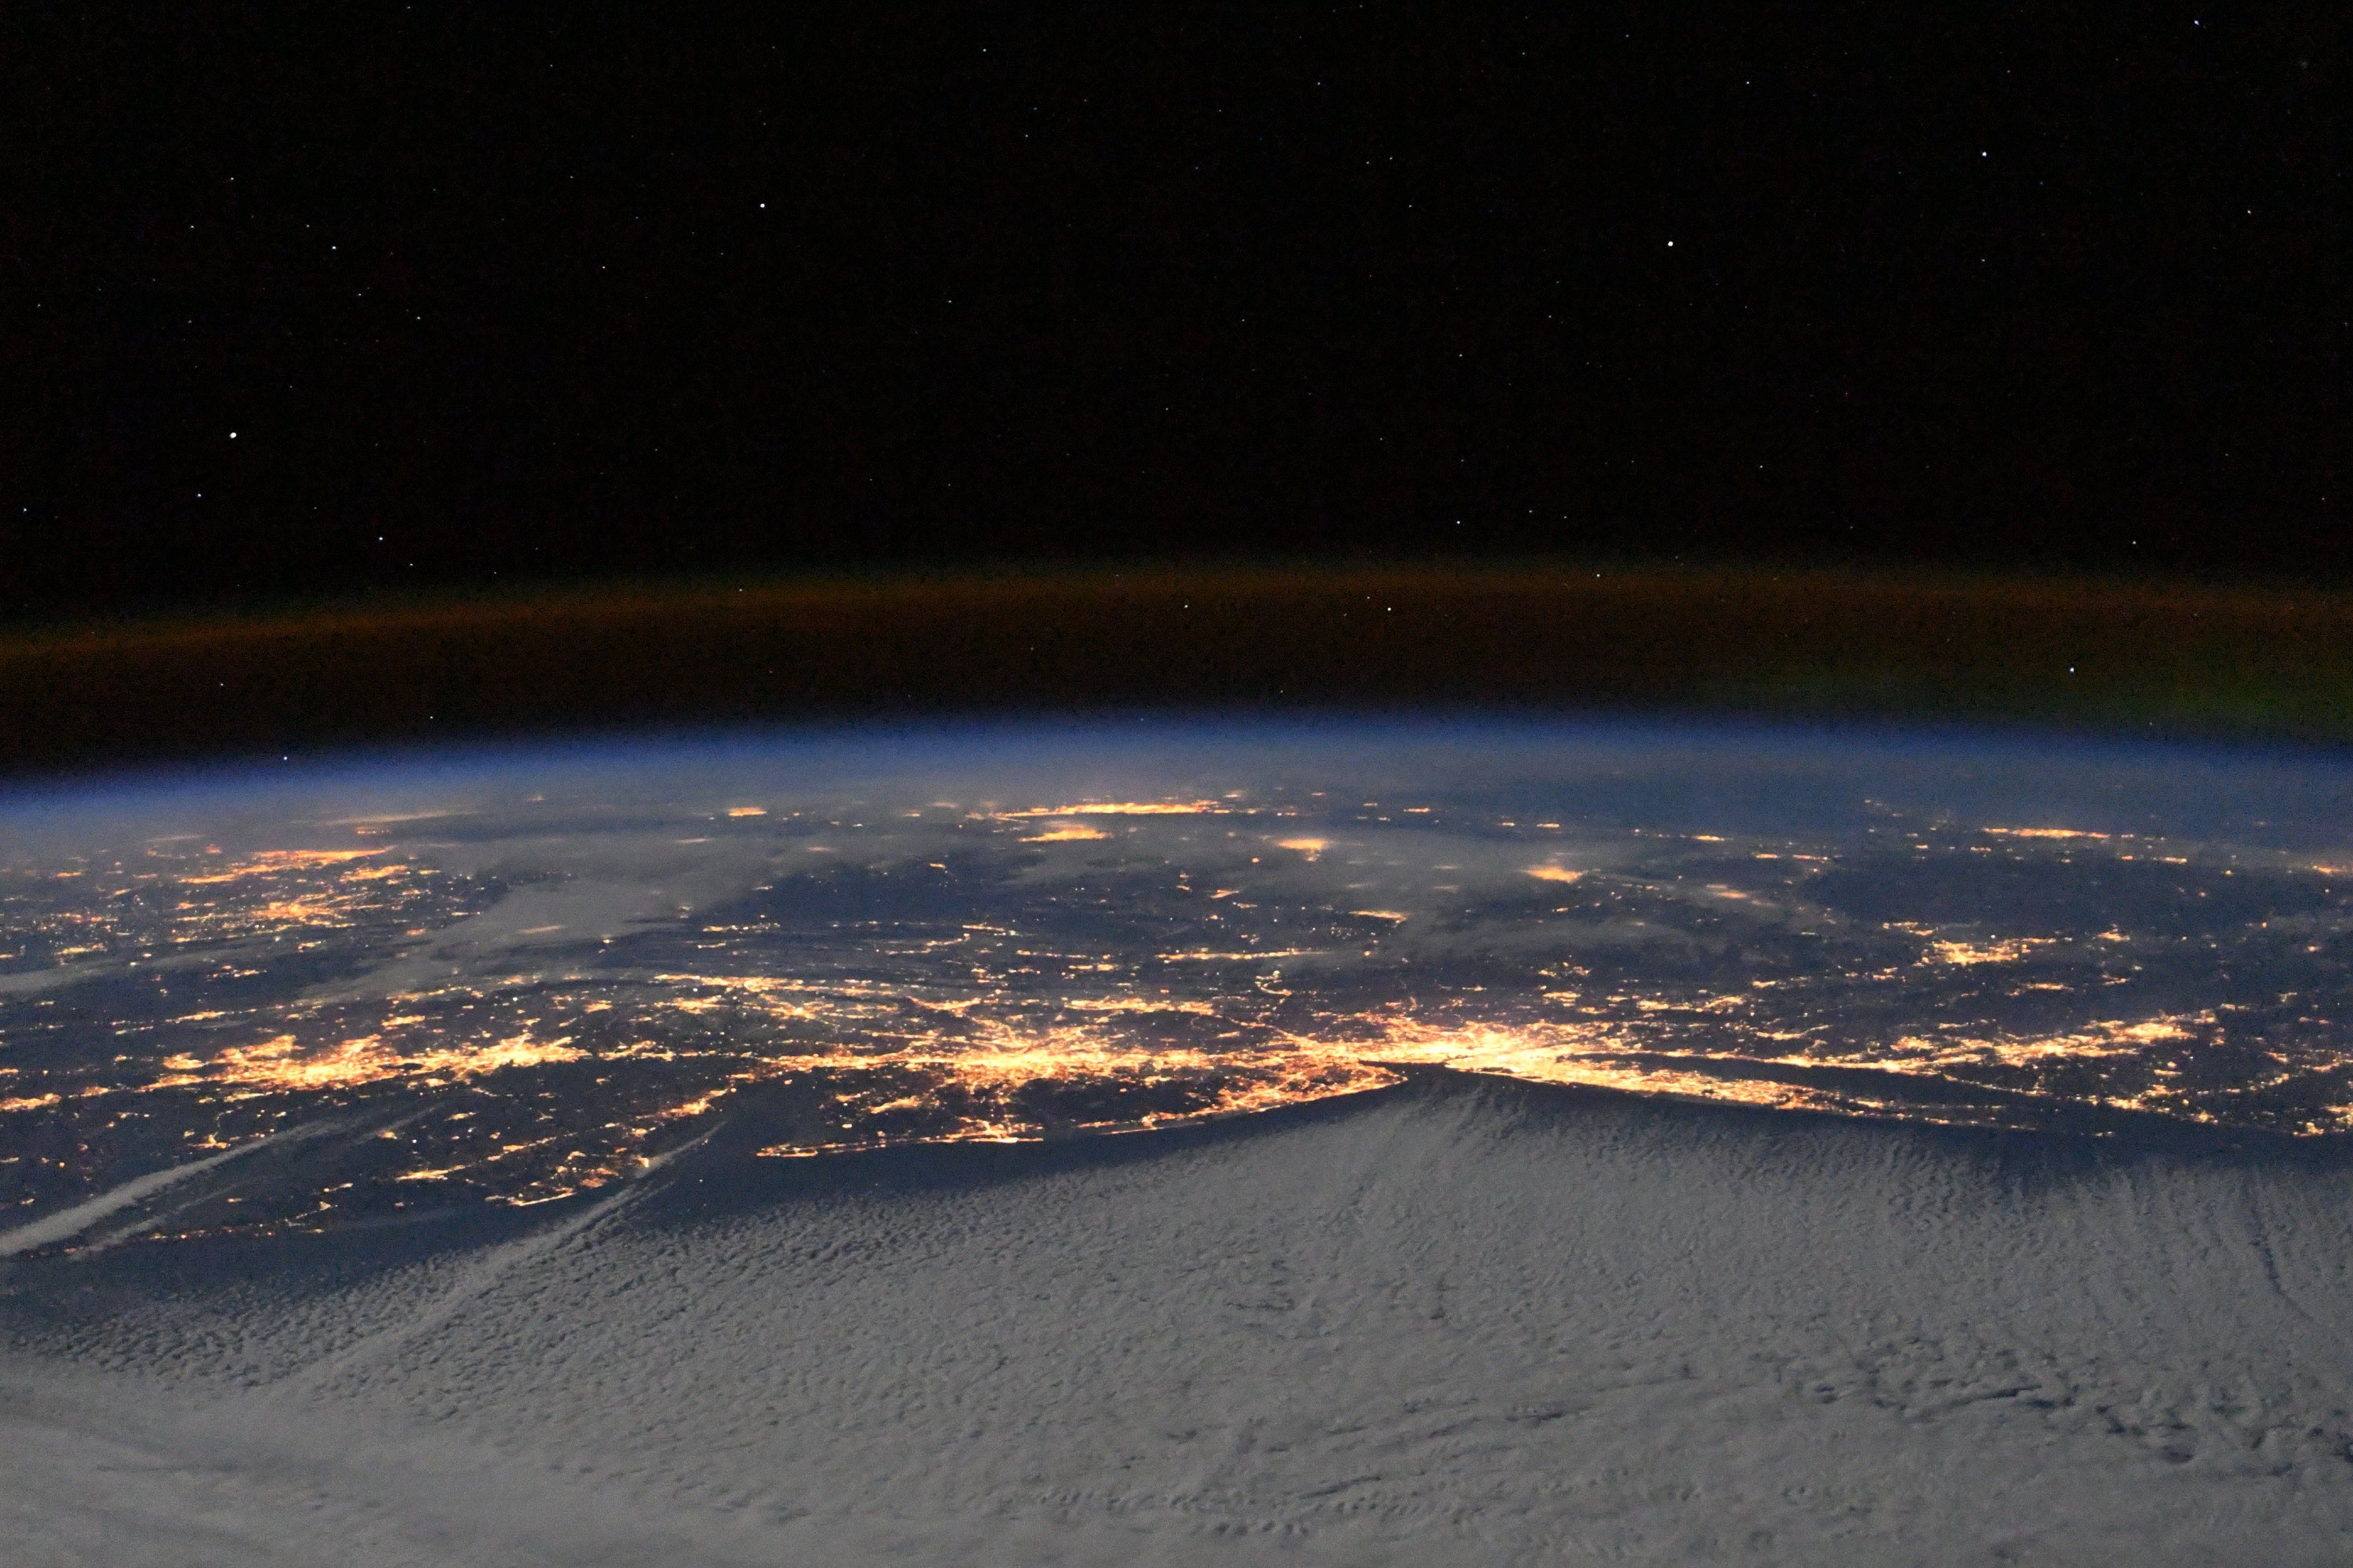 http://www.nasa.gov/sites/default/files/thumbnails/image/night.jpg